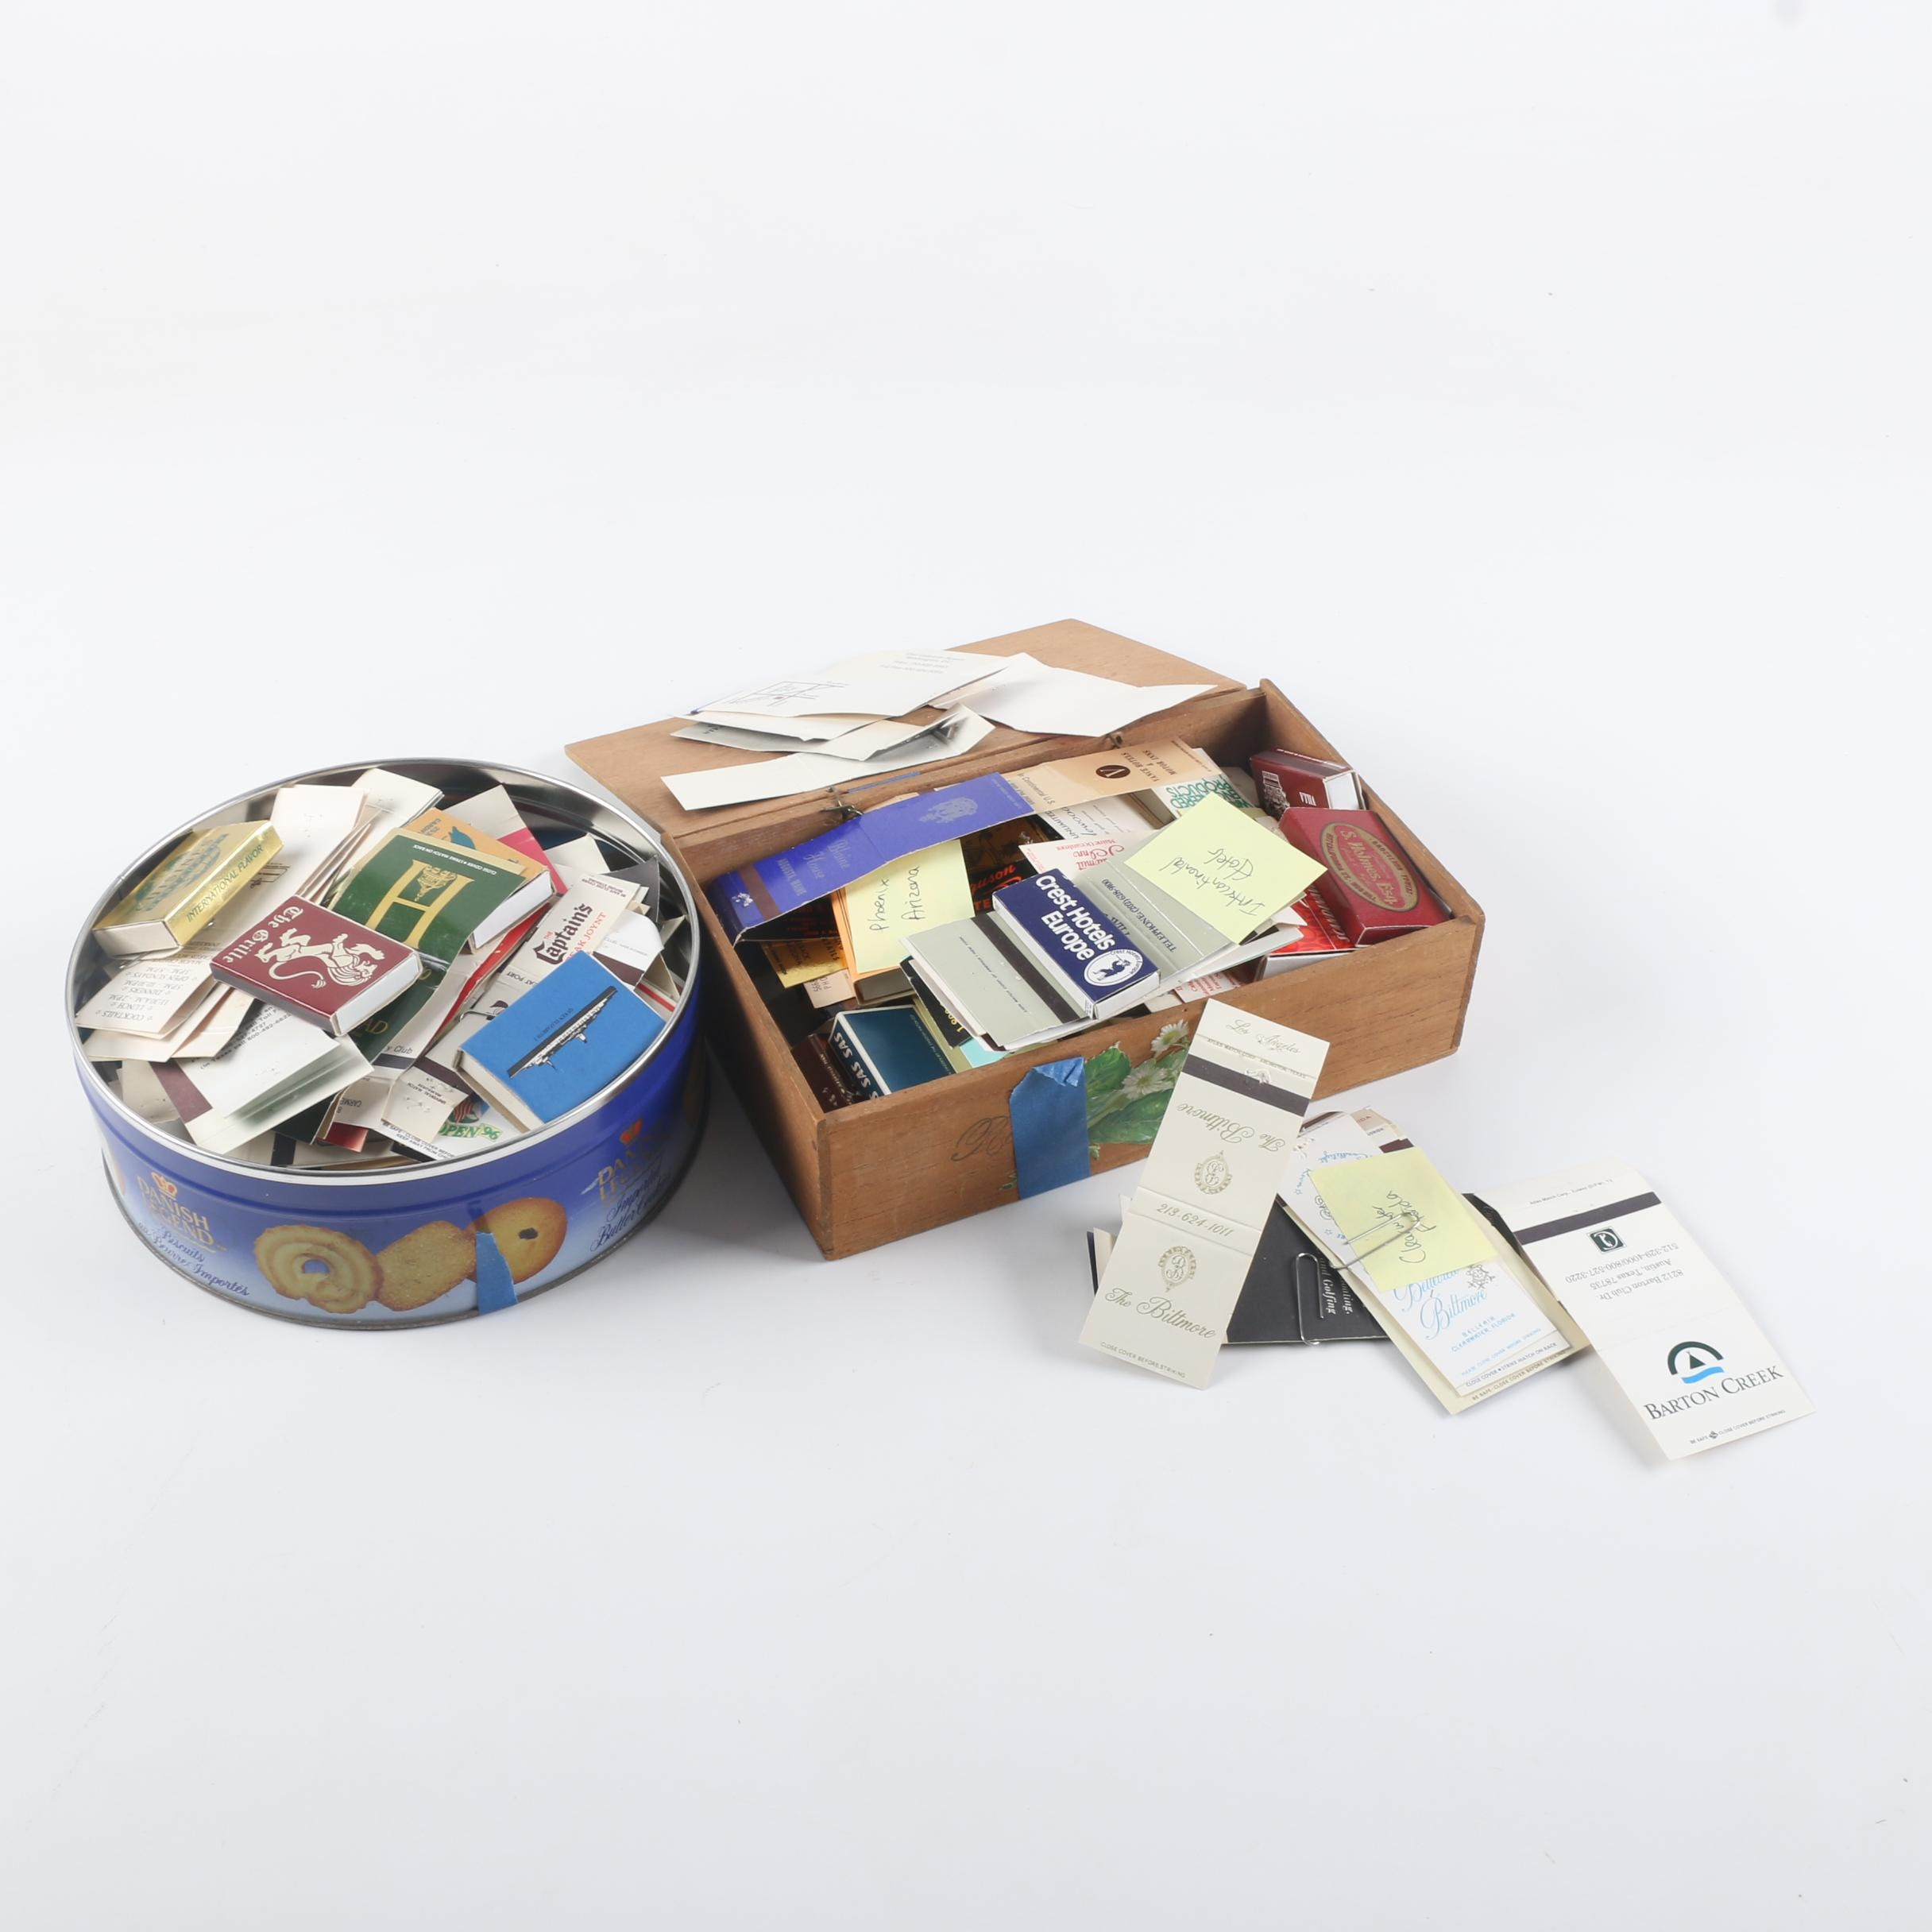 Containers Of Empty Matchbook Covers